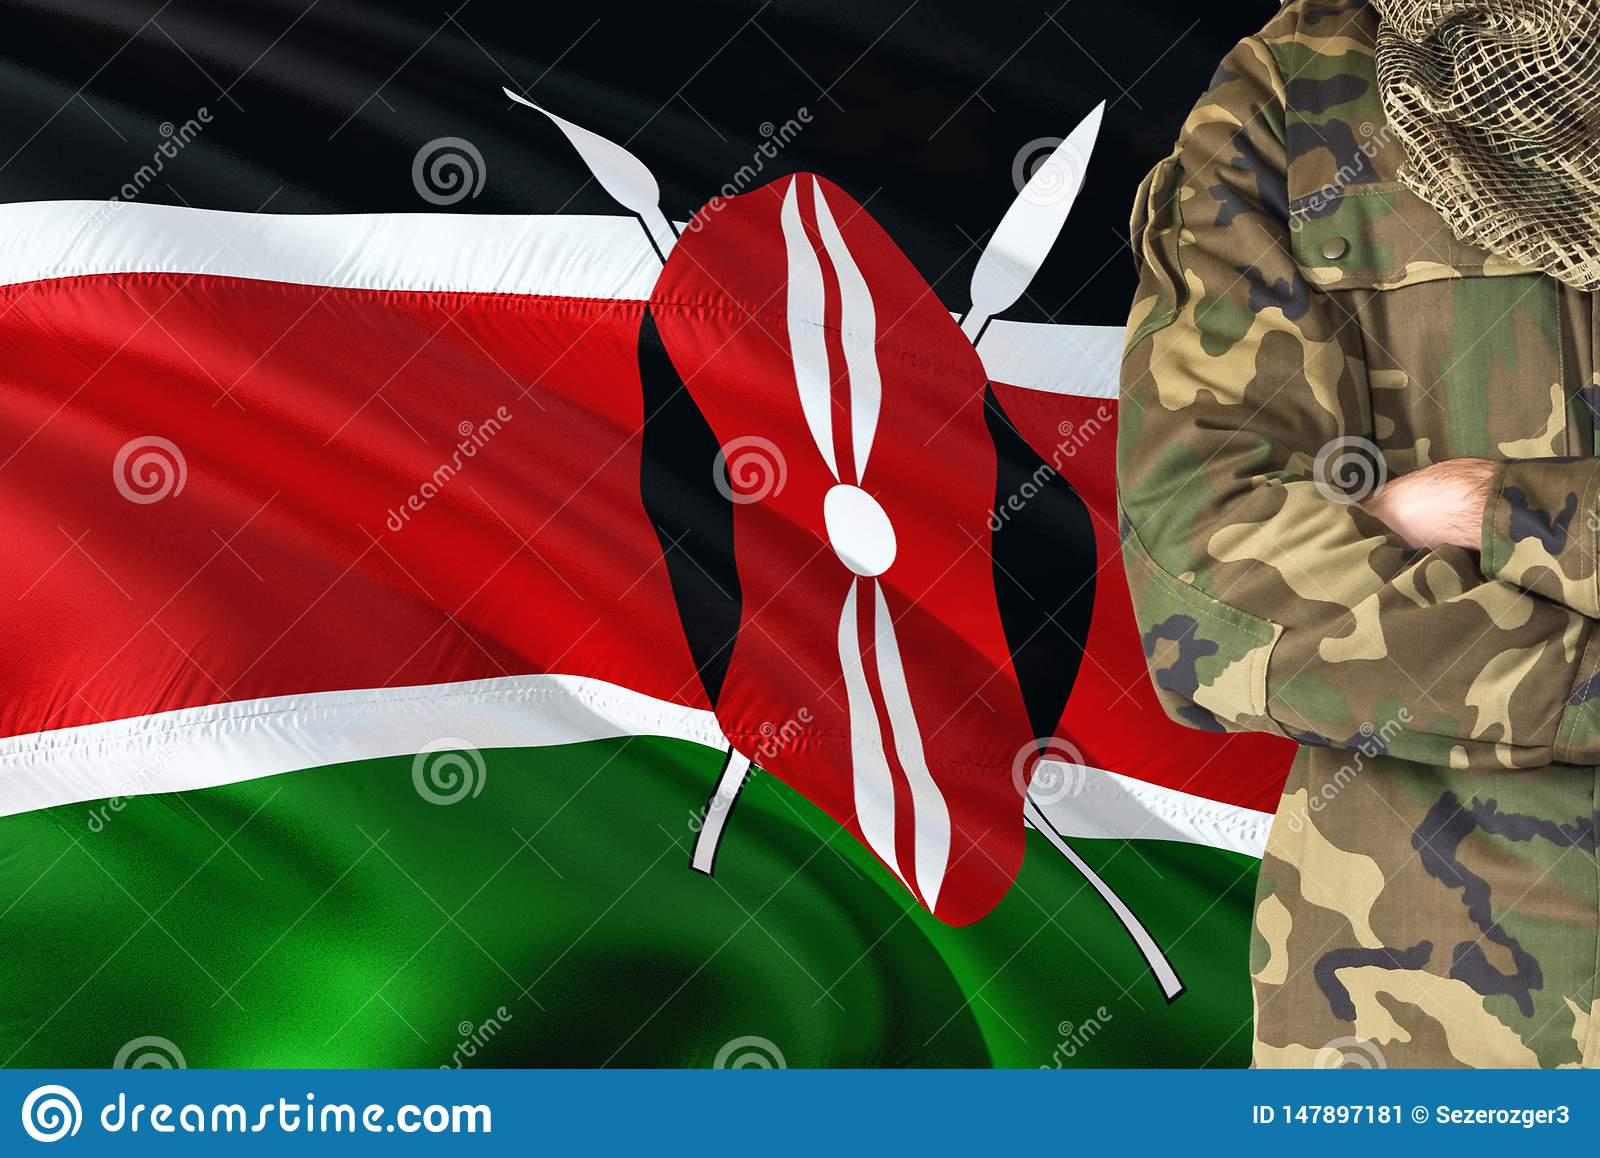 Crossed arms Kenyan soldier with national waving flag on background - Kenya Military theme